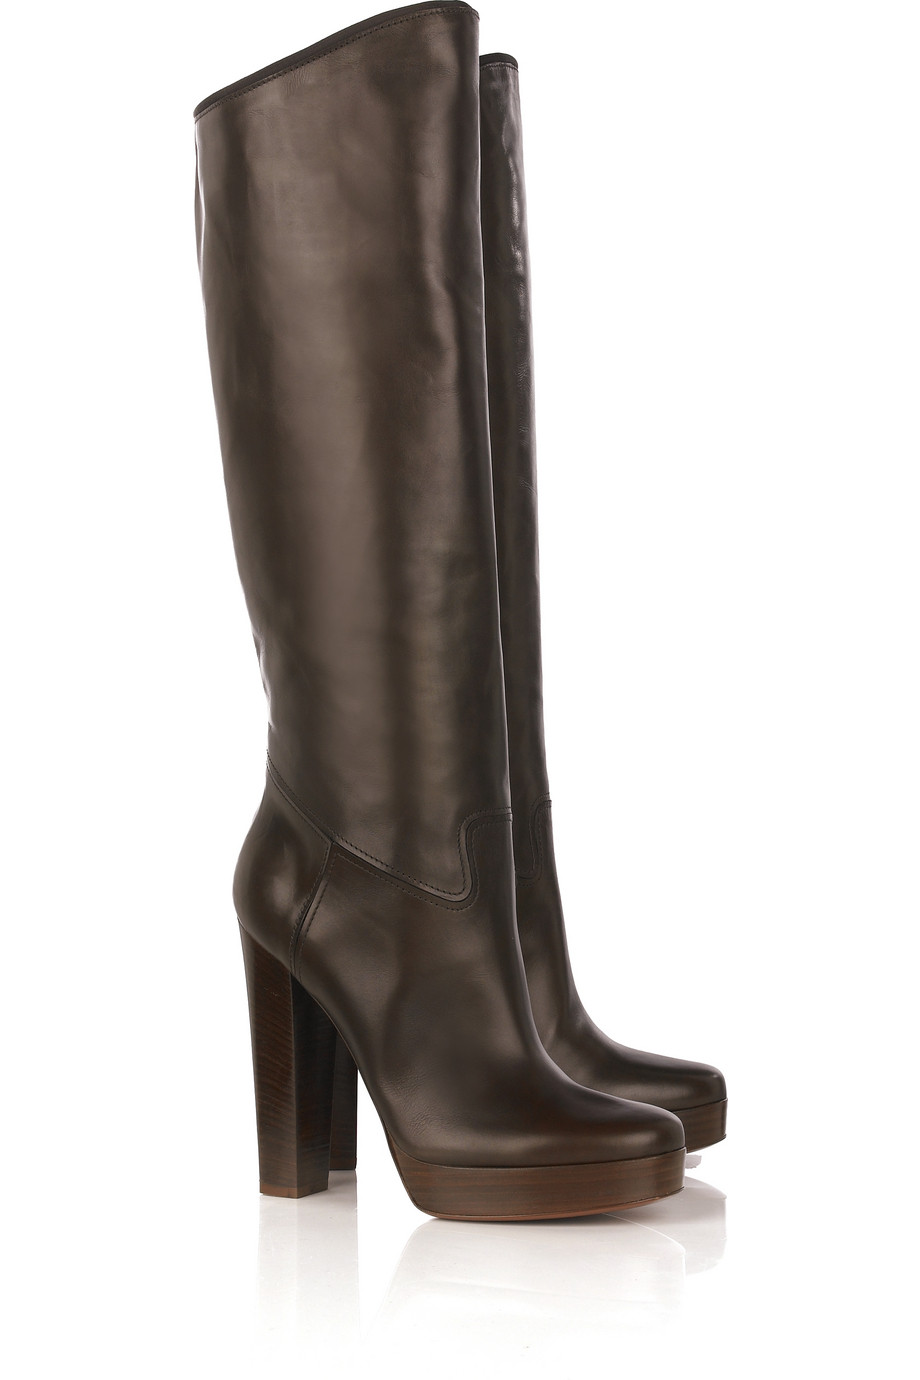 lanvin brown leather platform boots in brown lyst